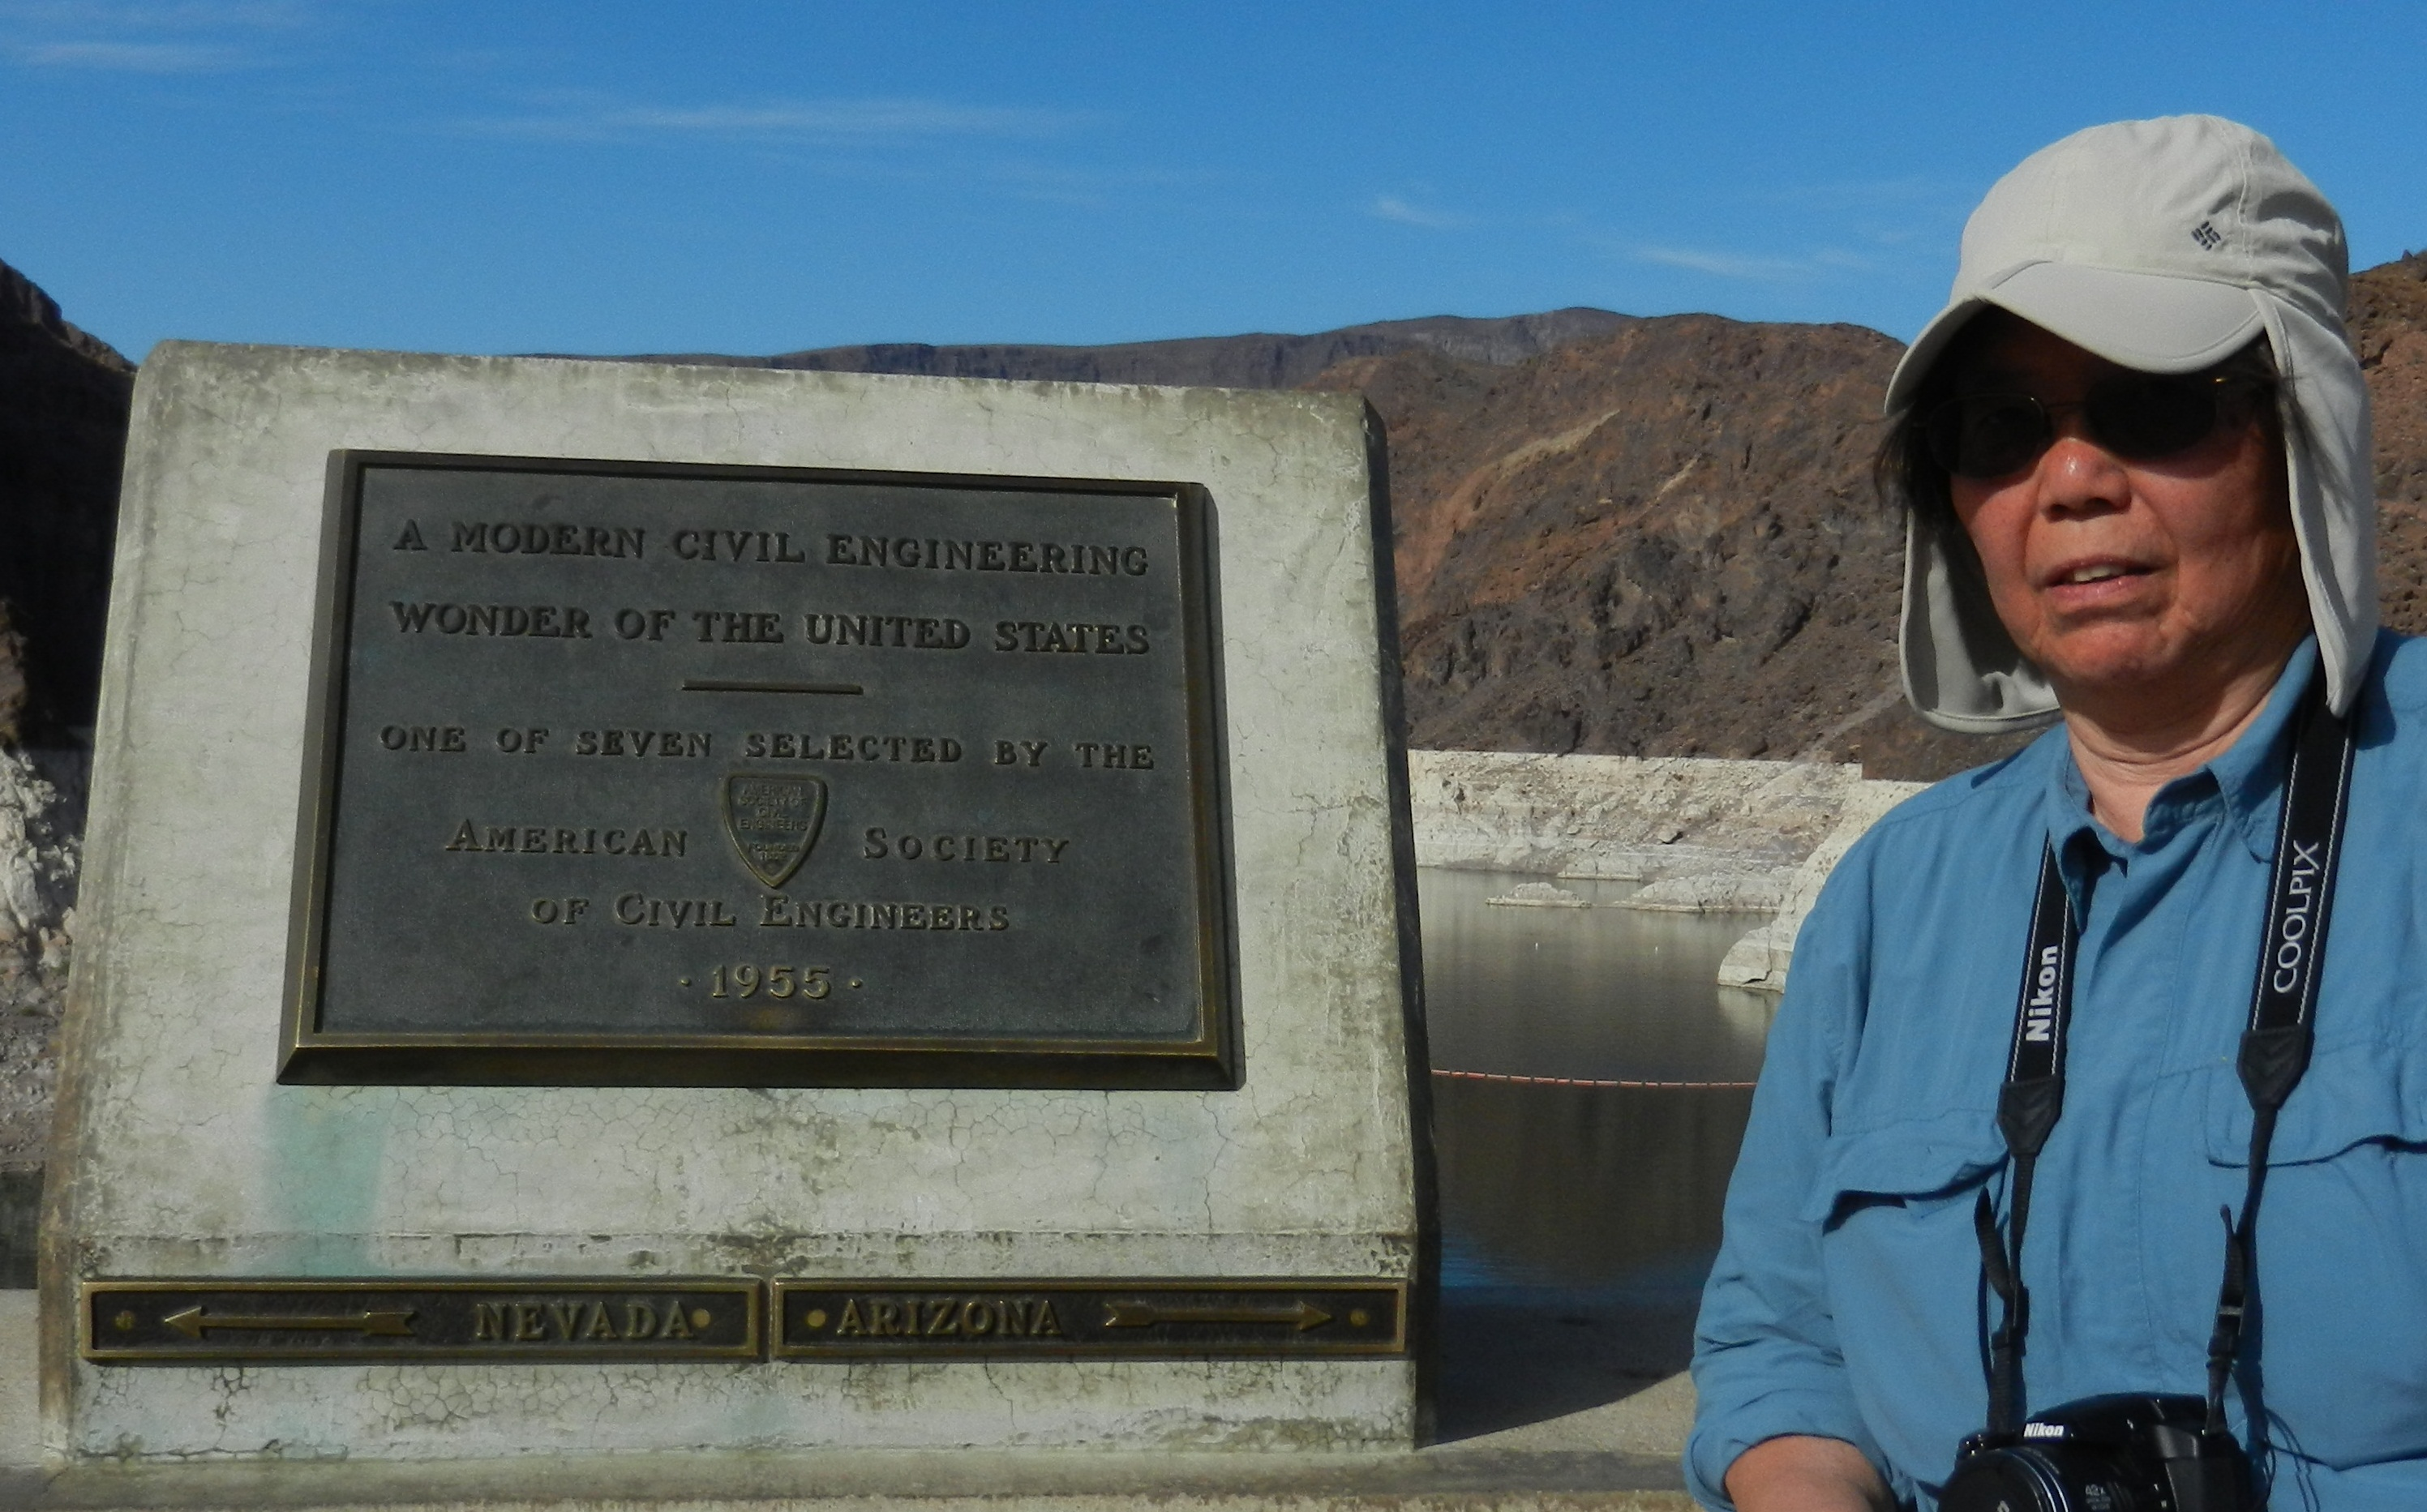 2015 at the Hoover Dam